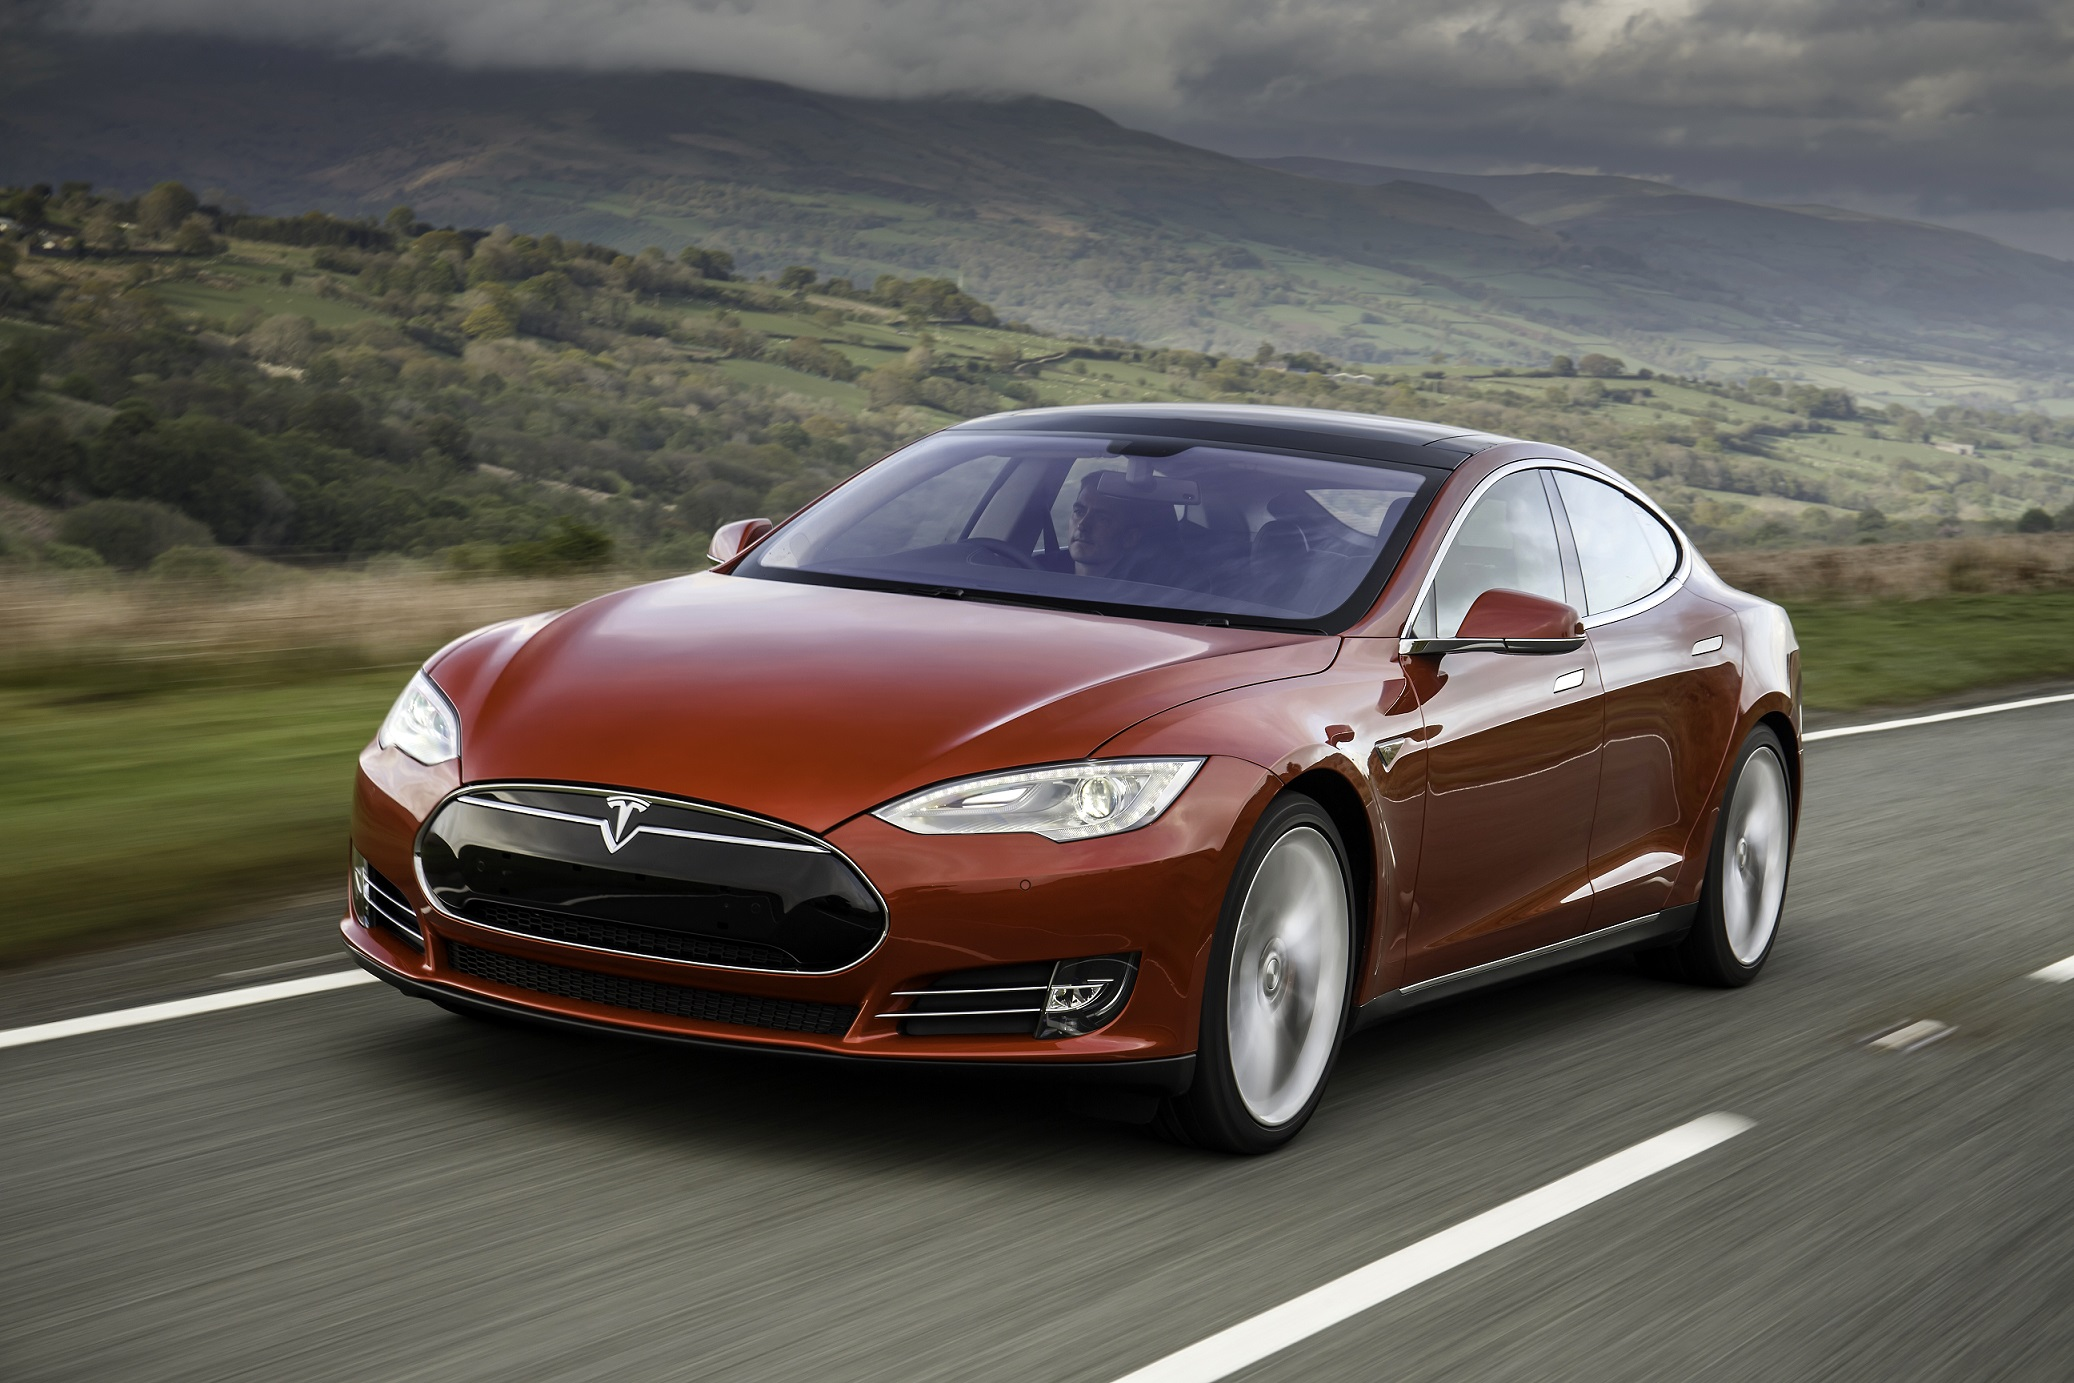 It is likely carmakers like Tesla will use the new technology first